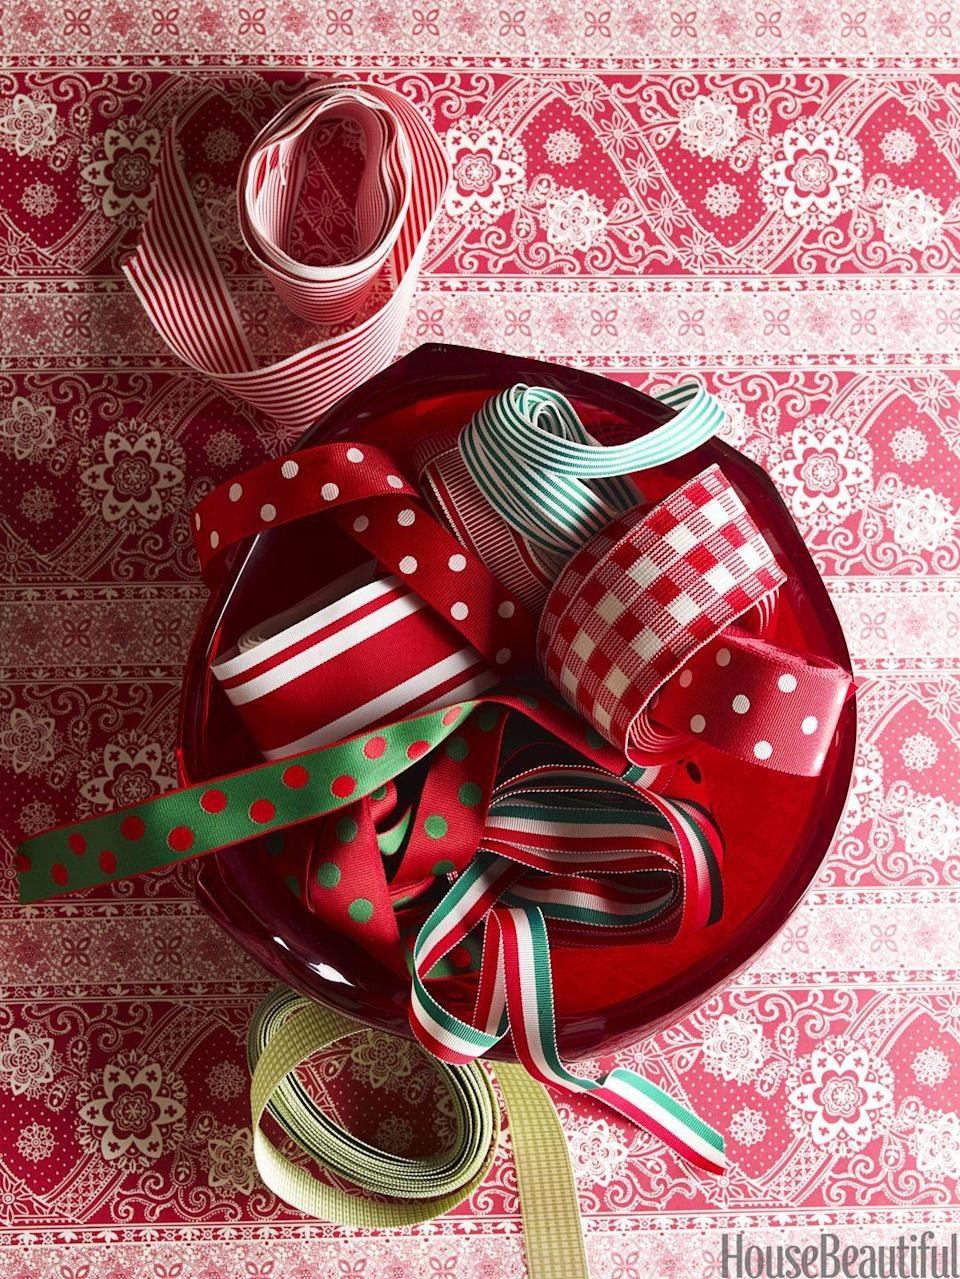 <p>Why choose one solid color when there are plenty of vibrant patterns to choose from? Consider polka dots, stripes, plaid, gingham, and more.</p>